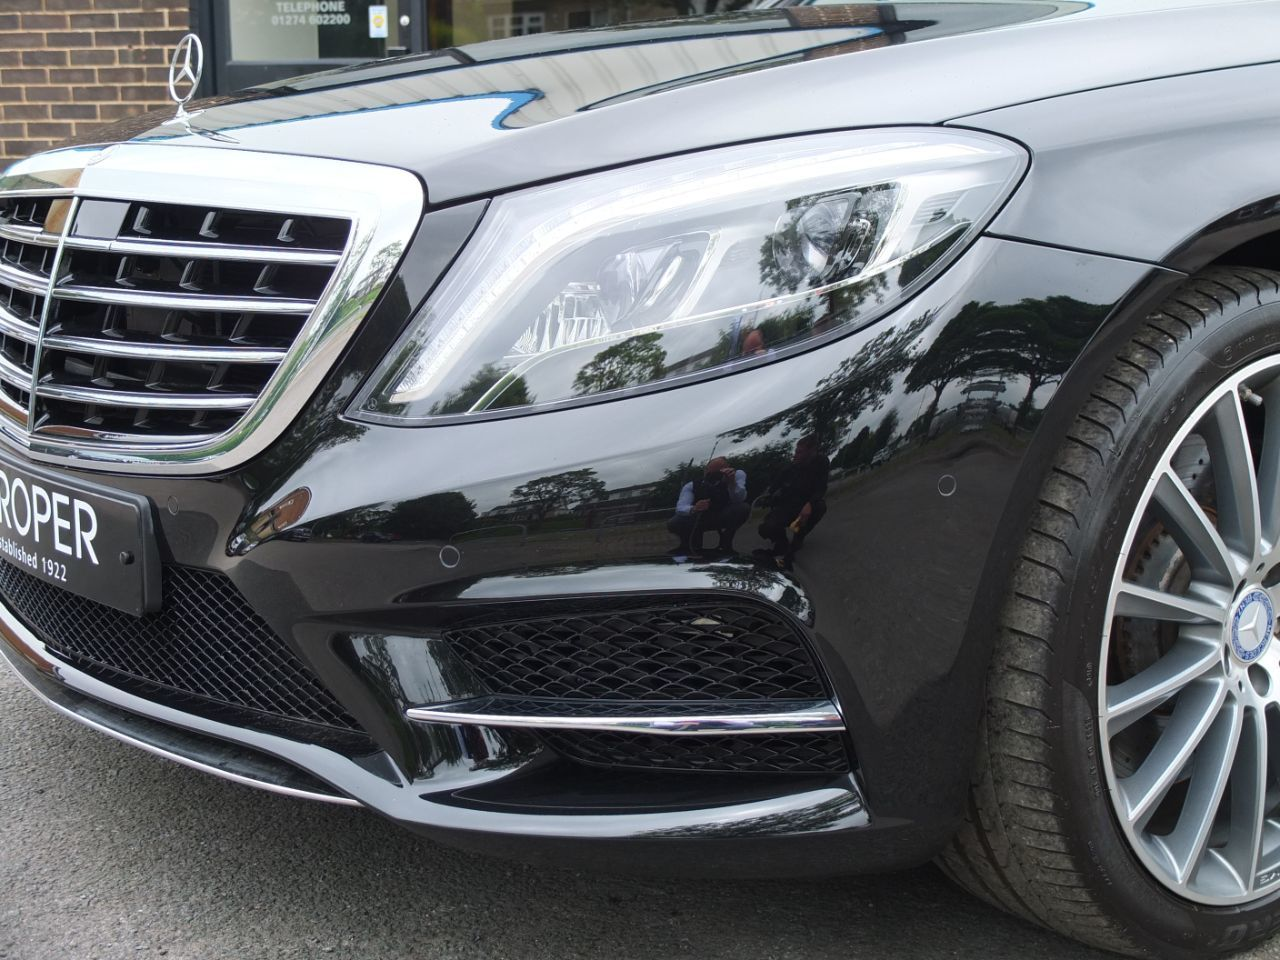 Mercedes-Benz S Class 3.0 S350d AMG Line G-Tronic (SWB) Saloon Diesel Obsidian Black Metallic